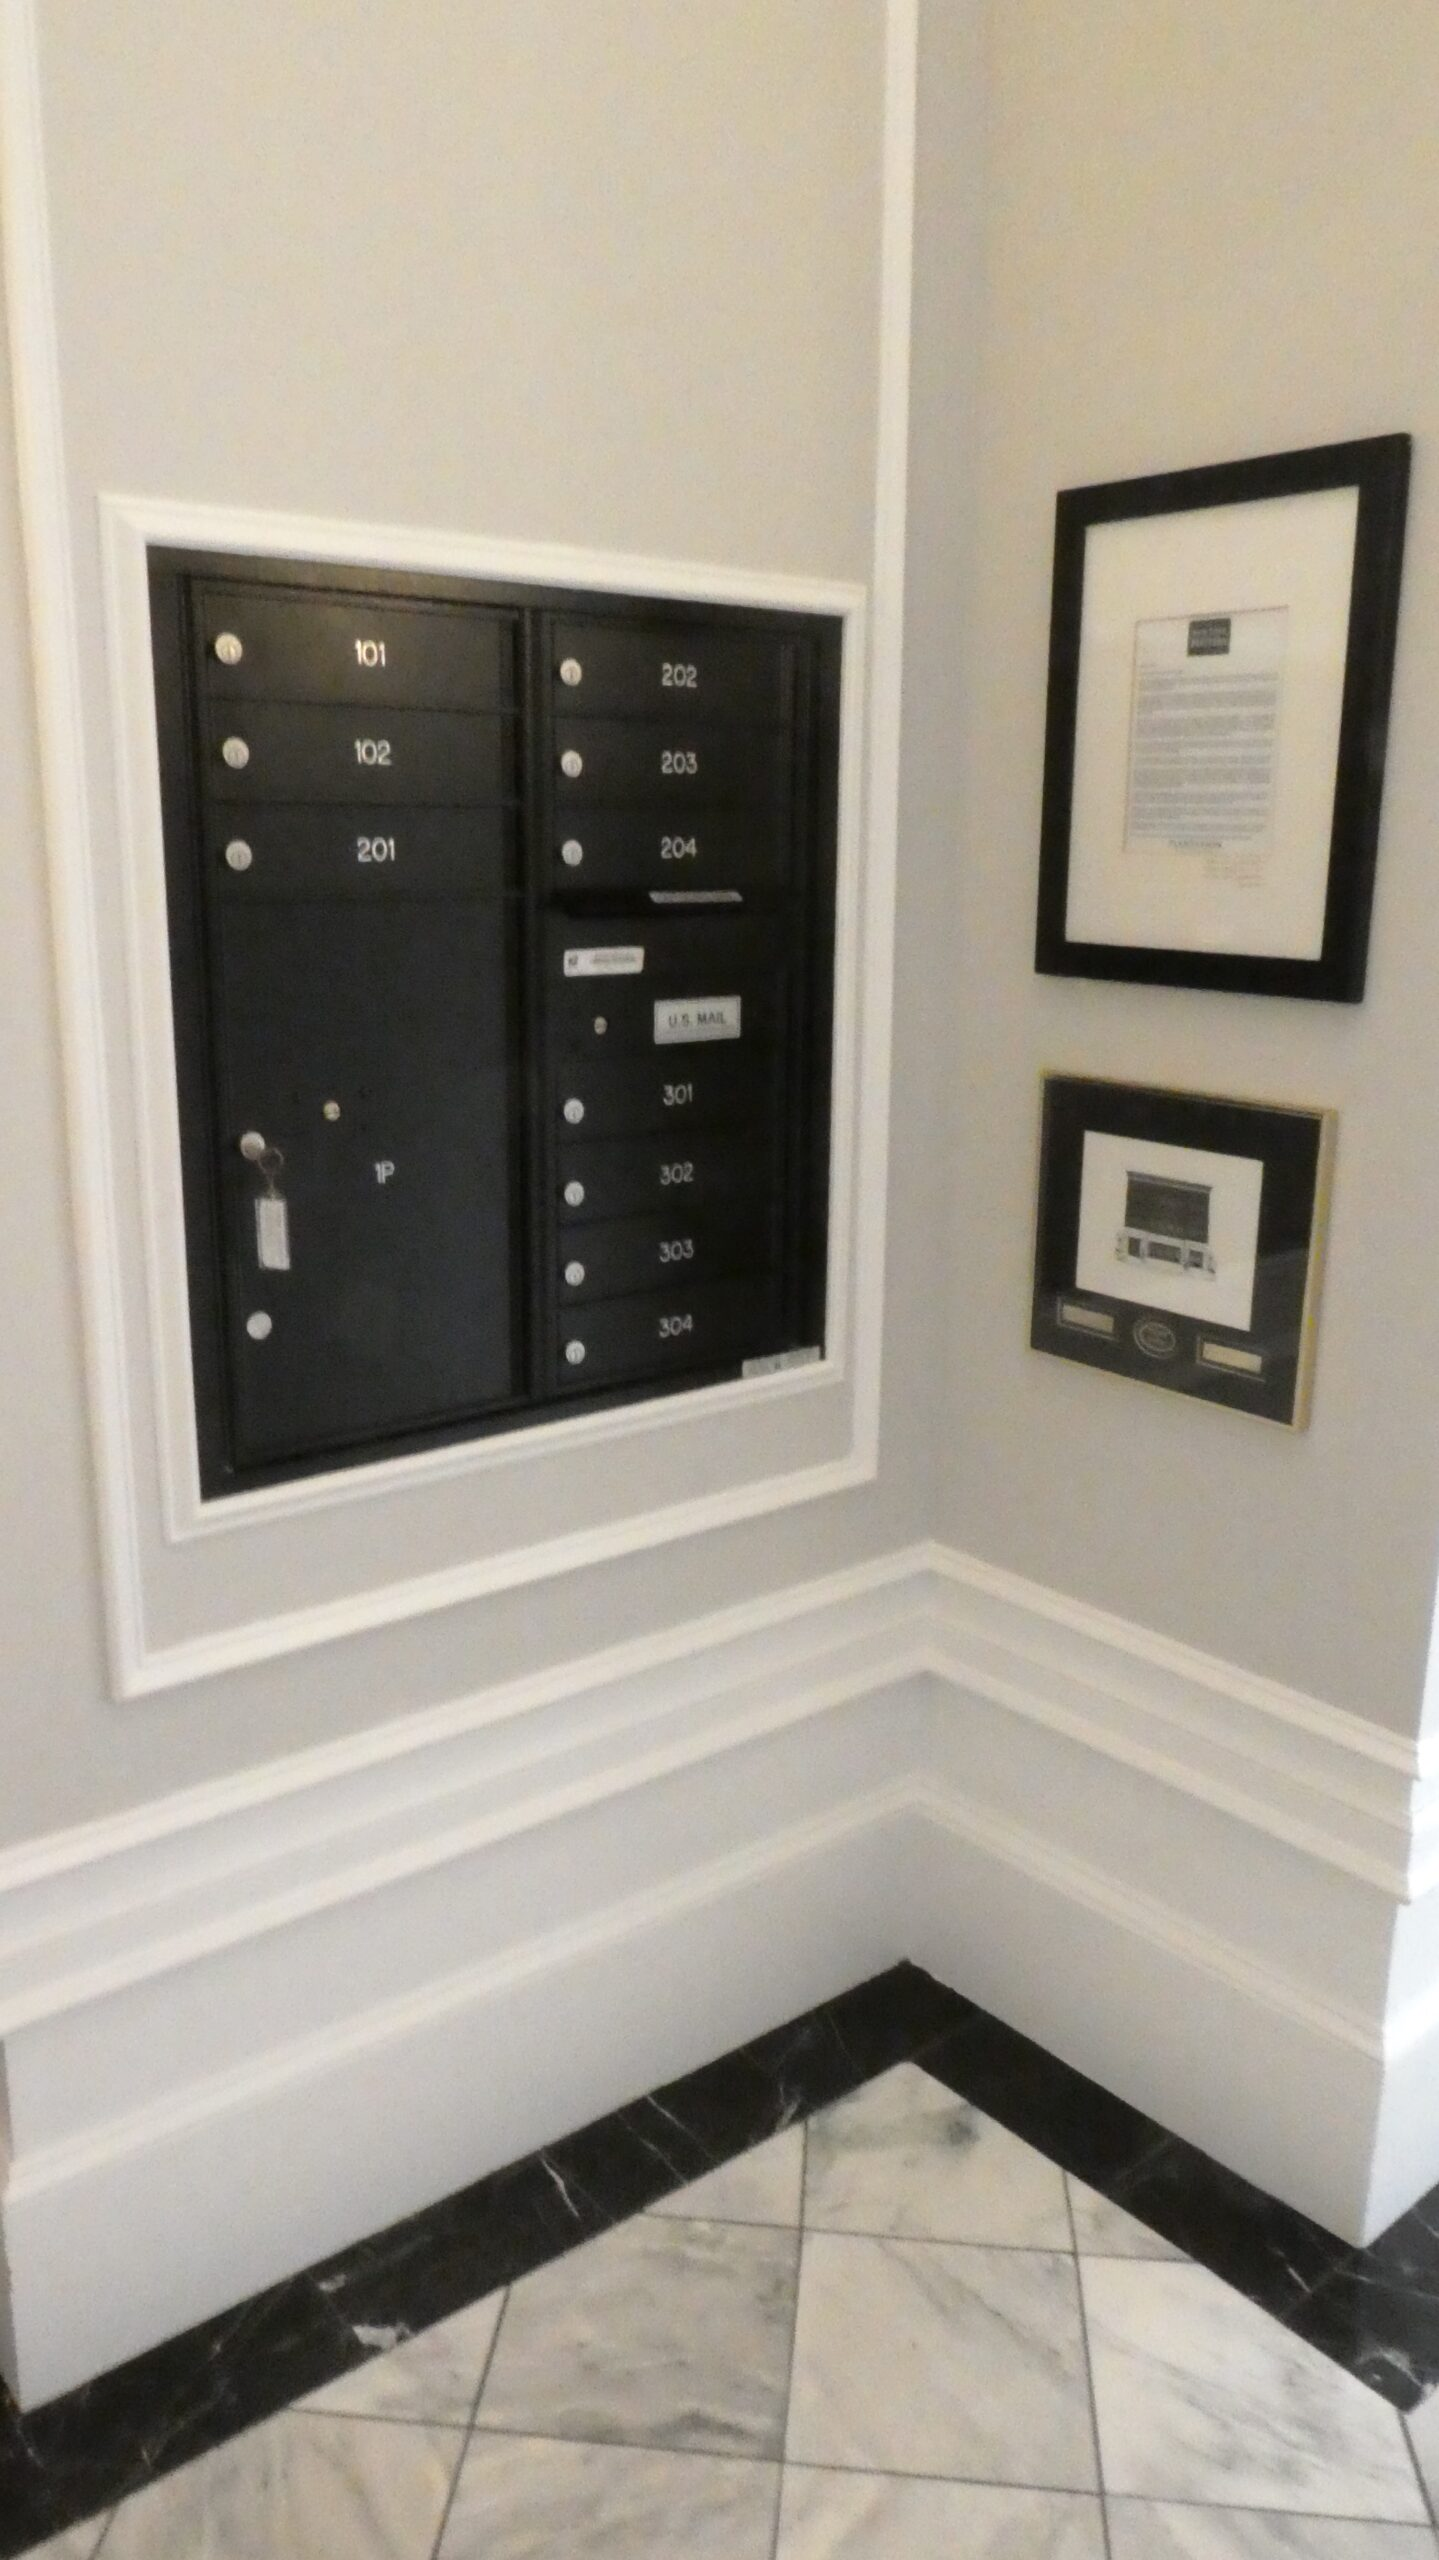 Ground floor hallway of the New York Hatters building showing resident mailboxes